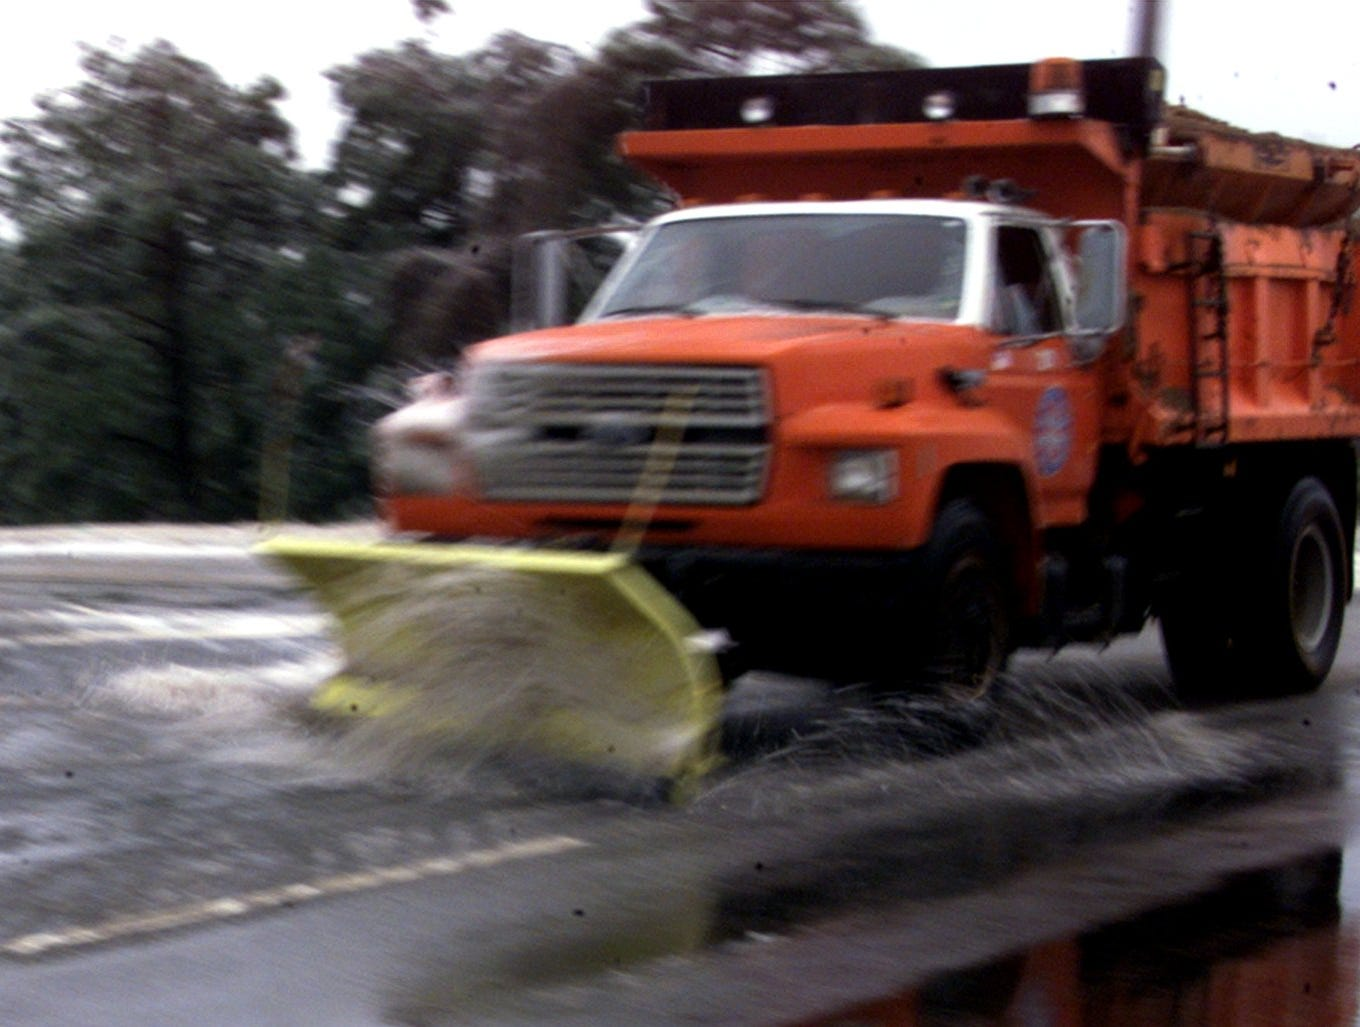 A snow plow on Roper Mountain Road on January 30, 2000.